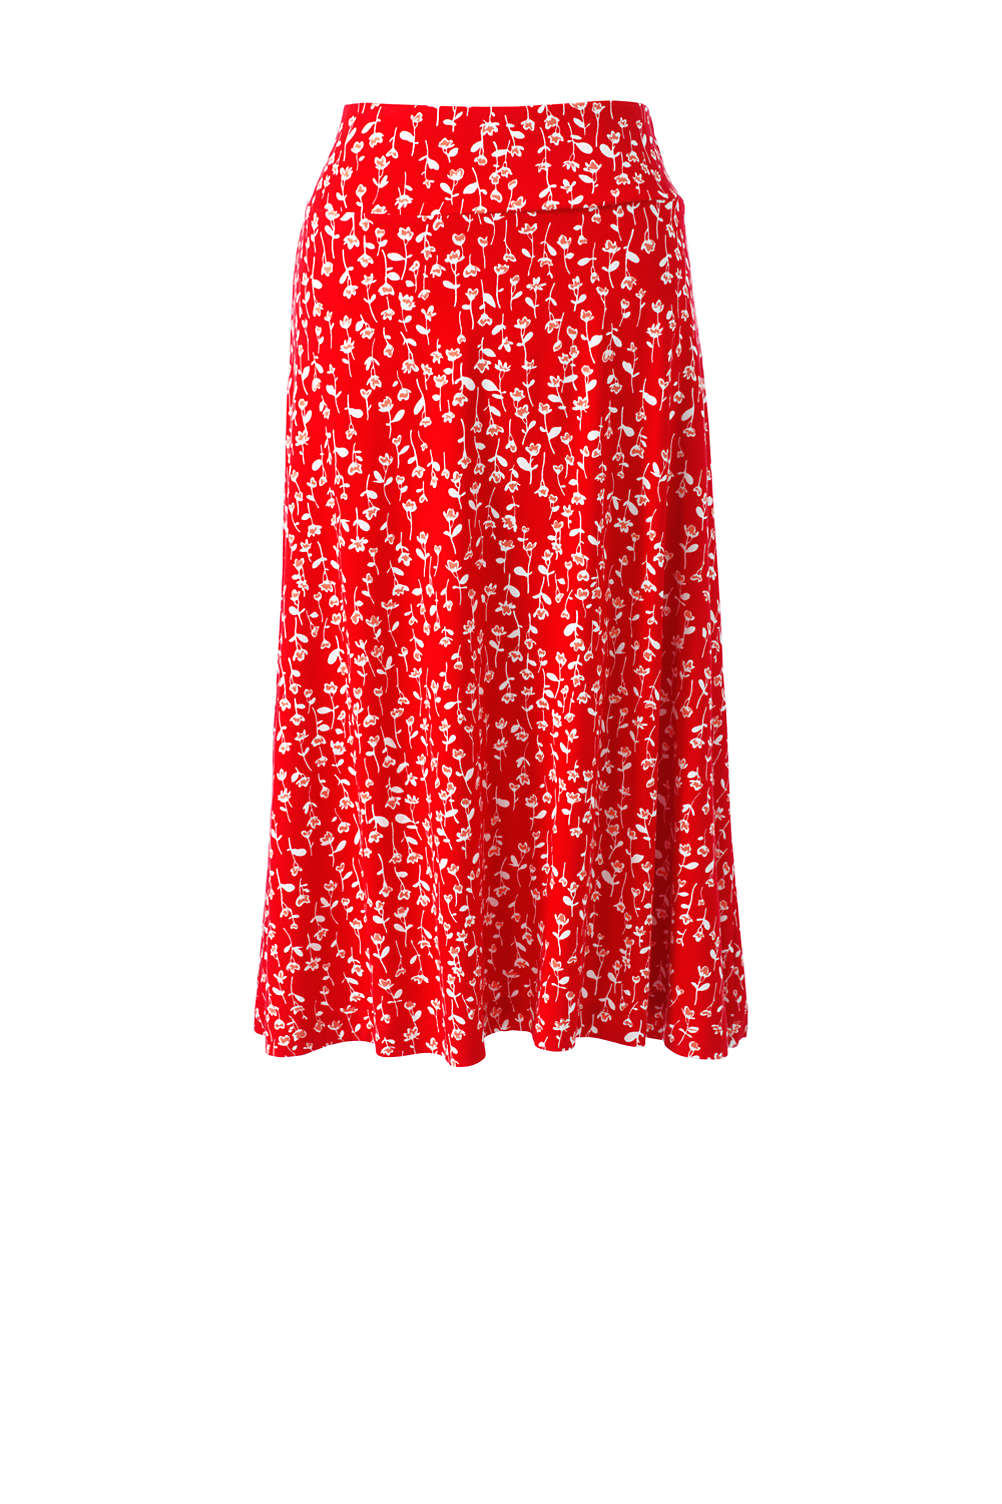 c21b313548 Women's Floral Knit Midi Skirt from Lands' End